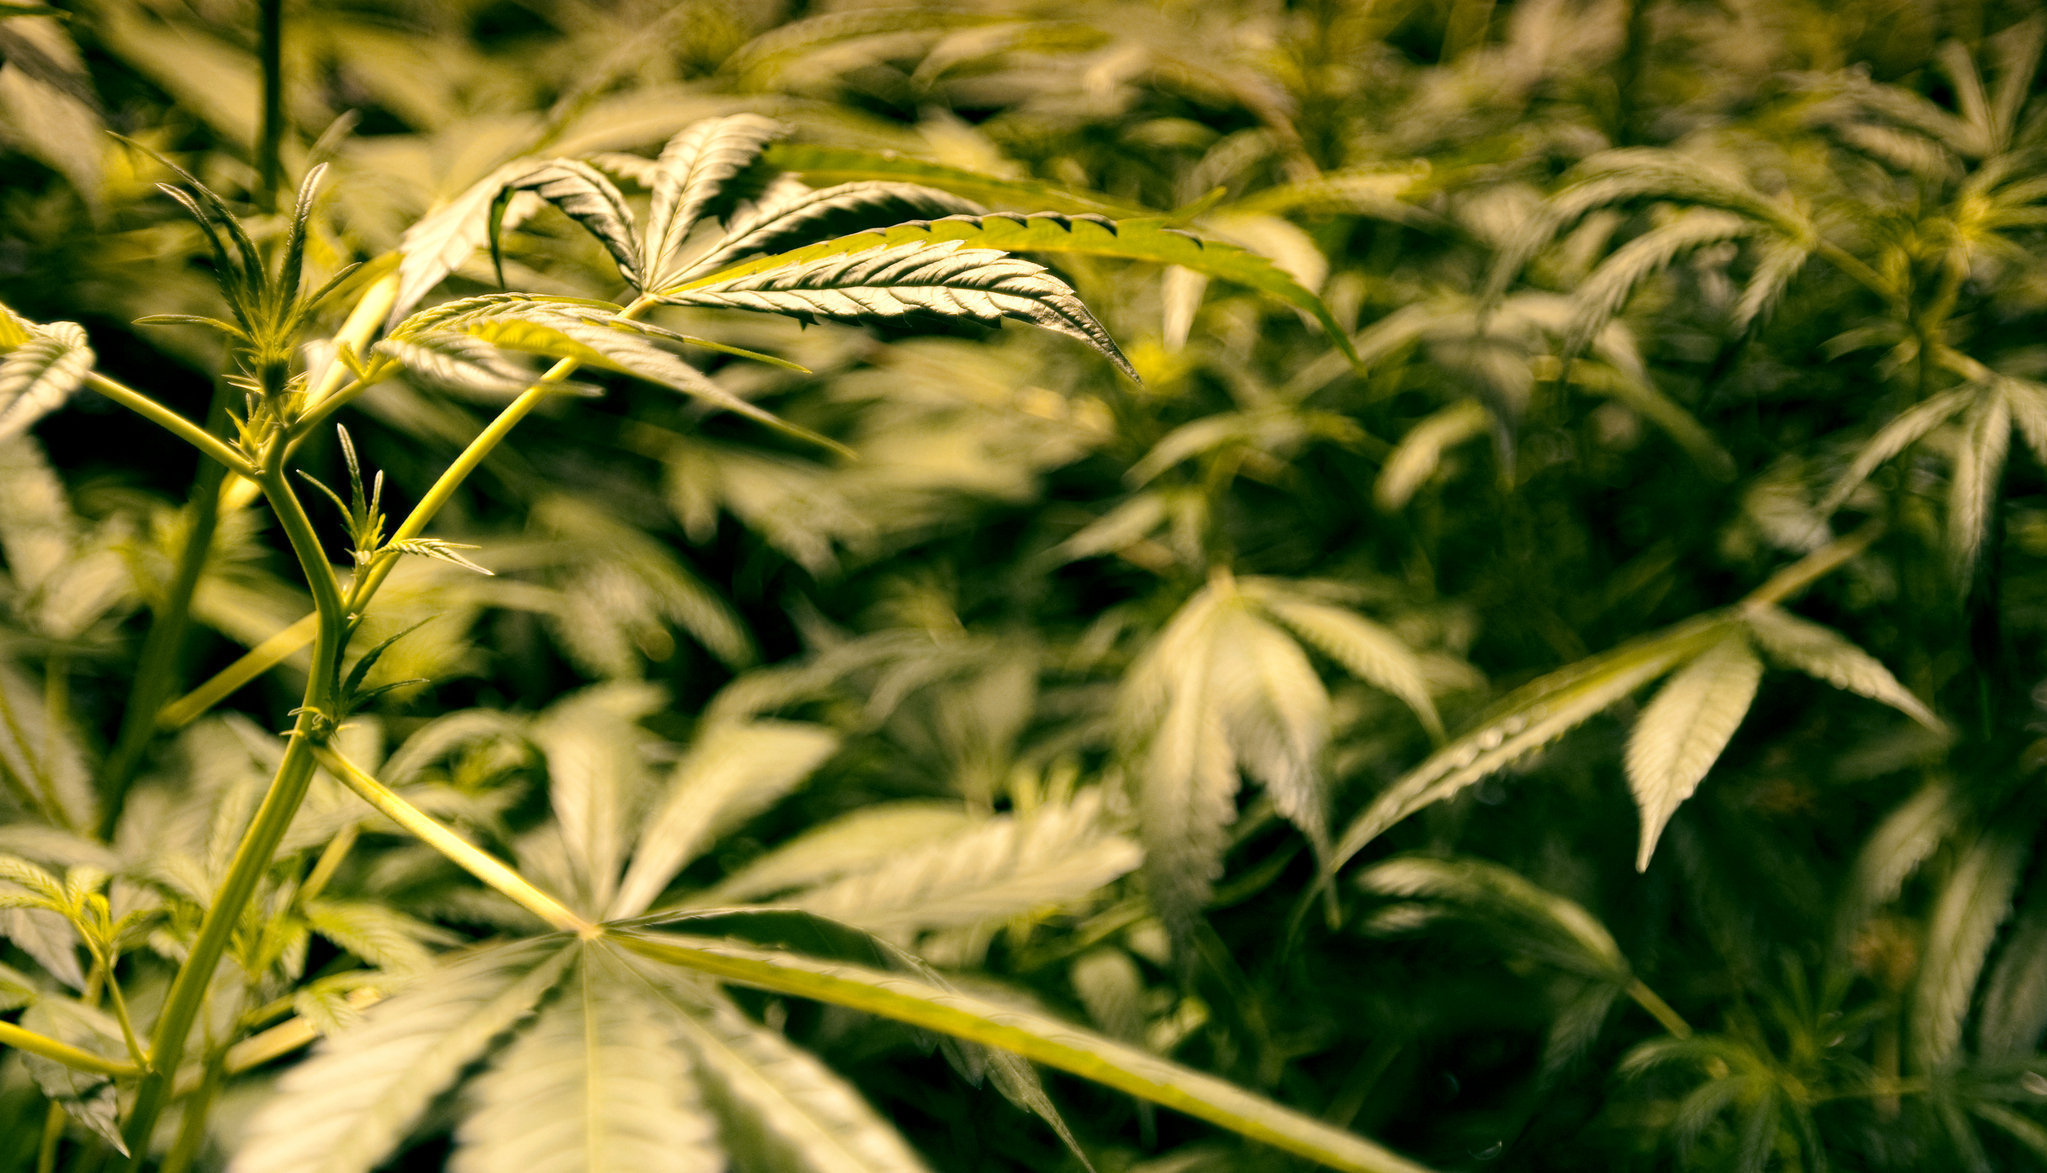 medical-marijuana-03jpg-6b3a017fae342e4a.jpg